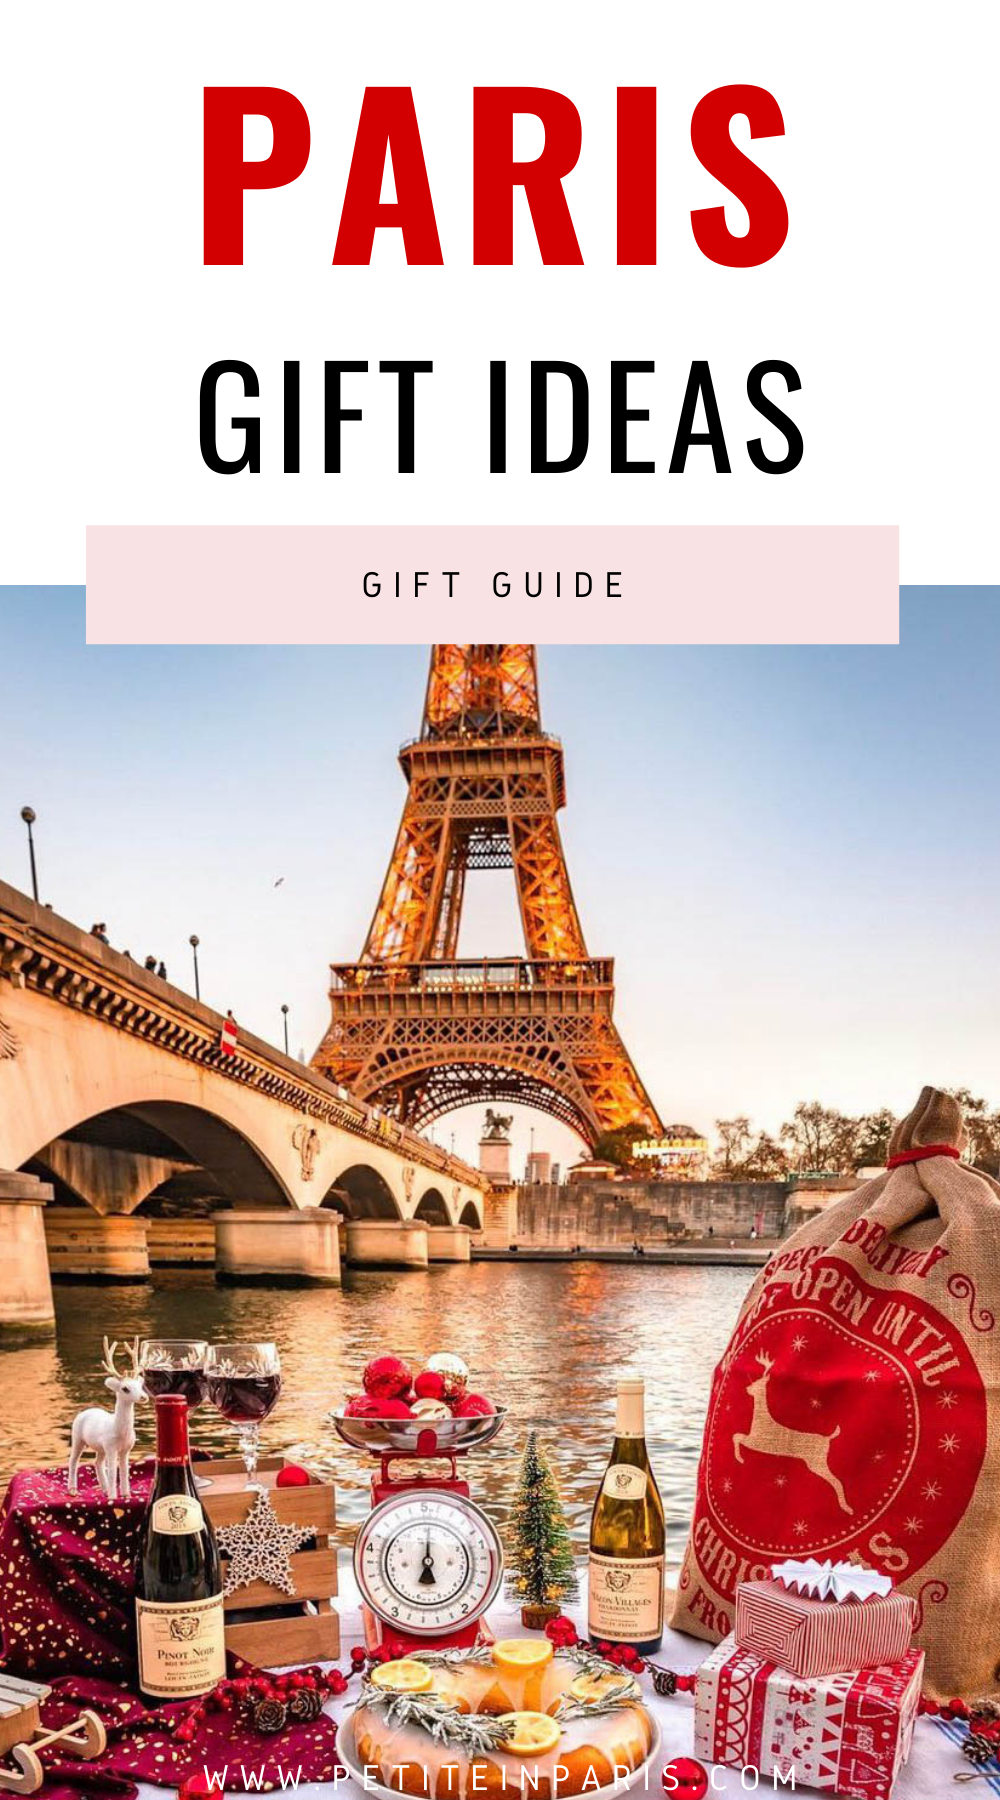 Paris themed gift ideas